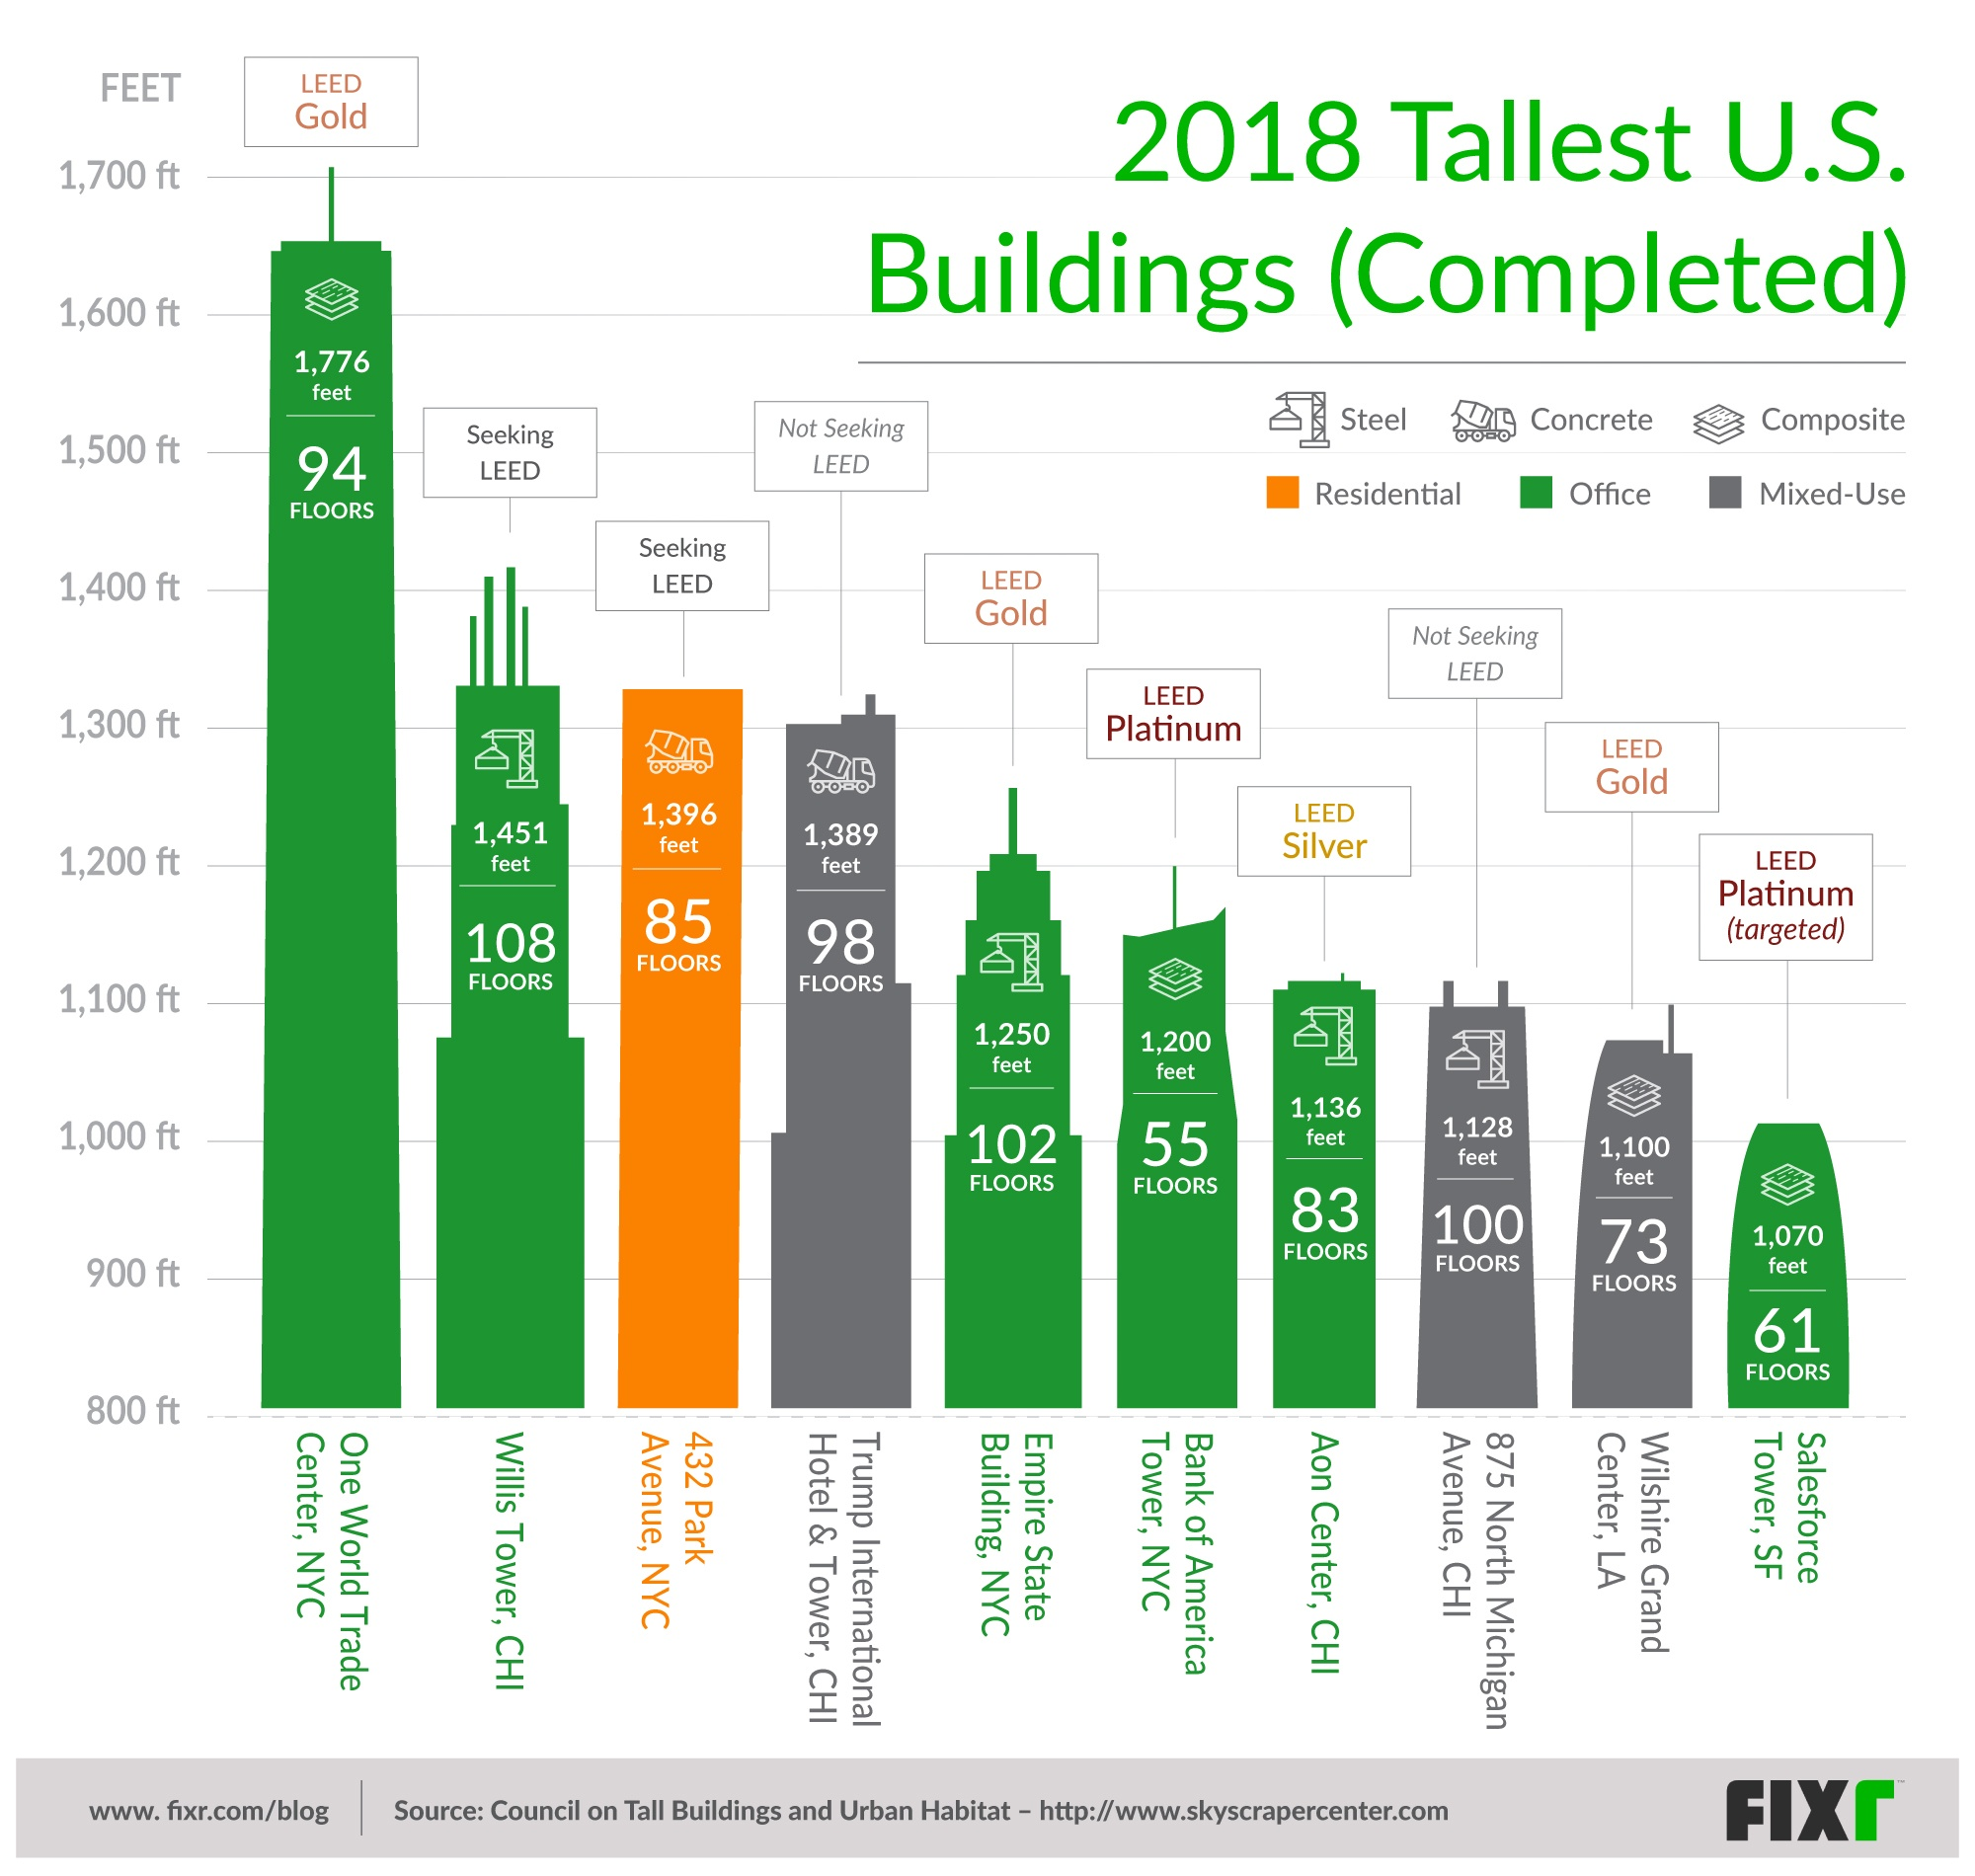 Visual Overview of 2018's Top 10 Tallest Buildings in the U.S.